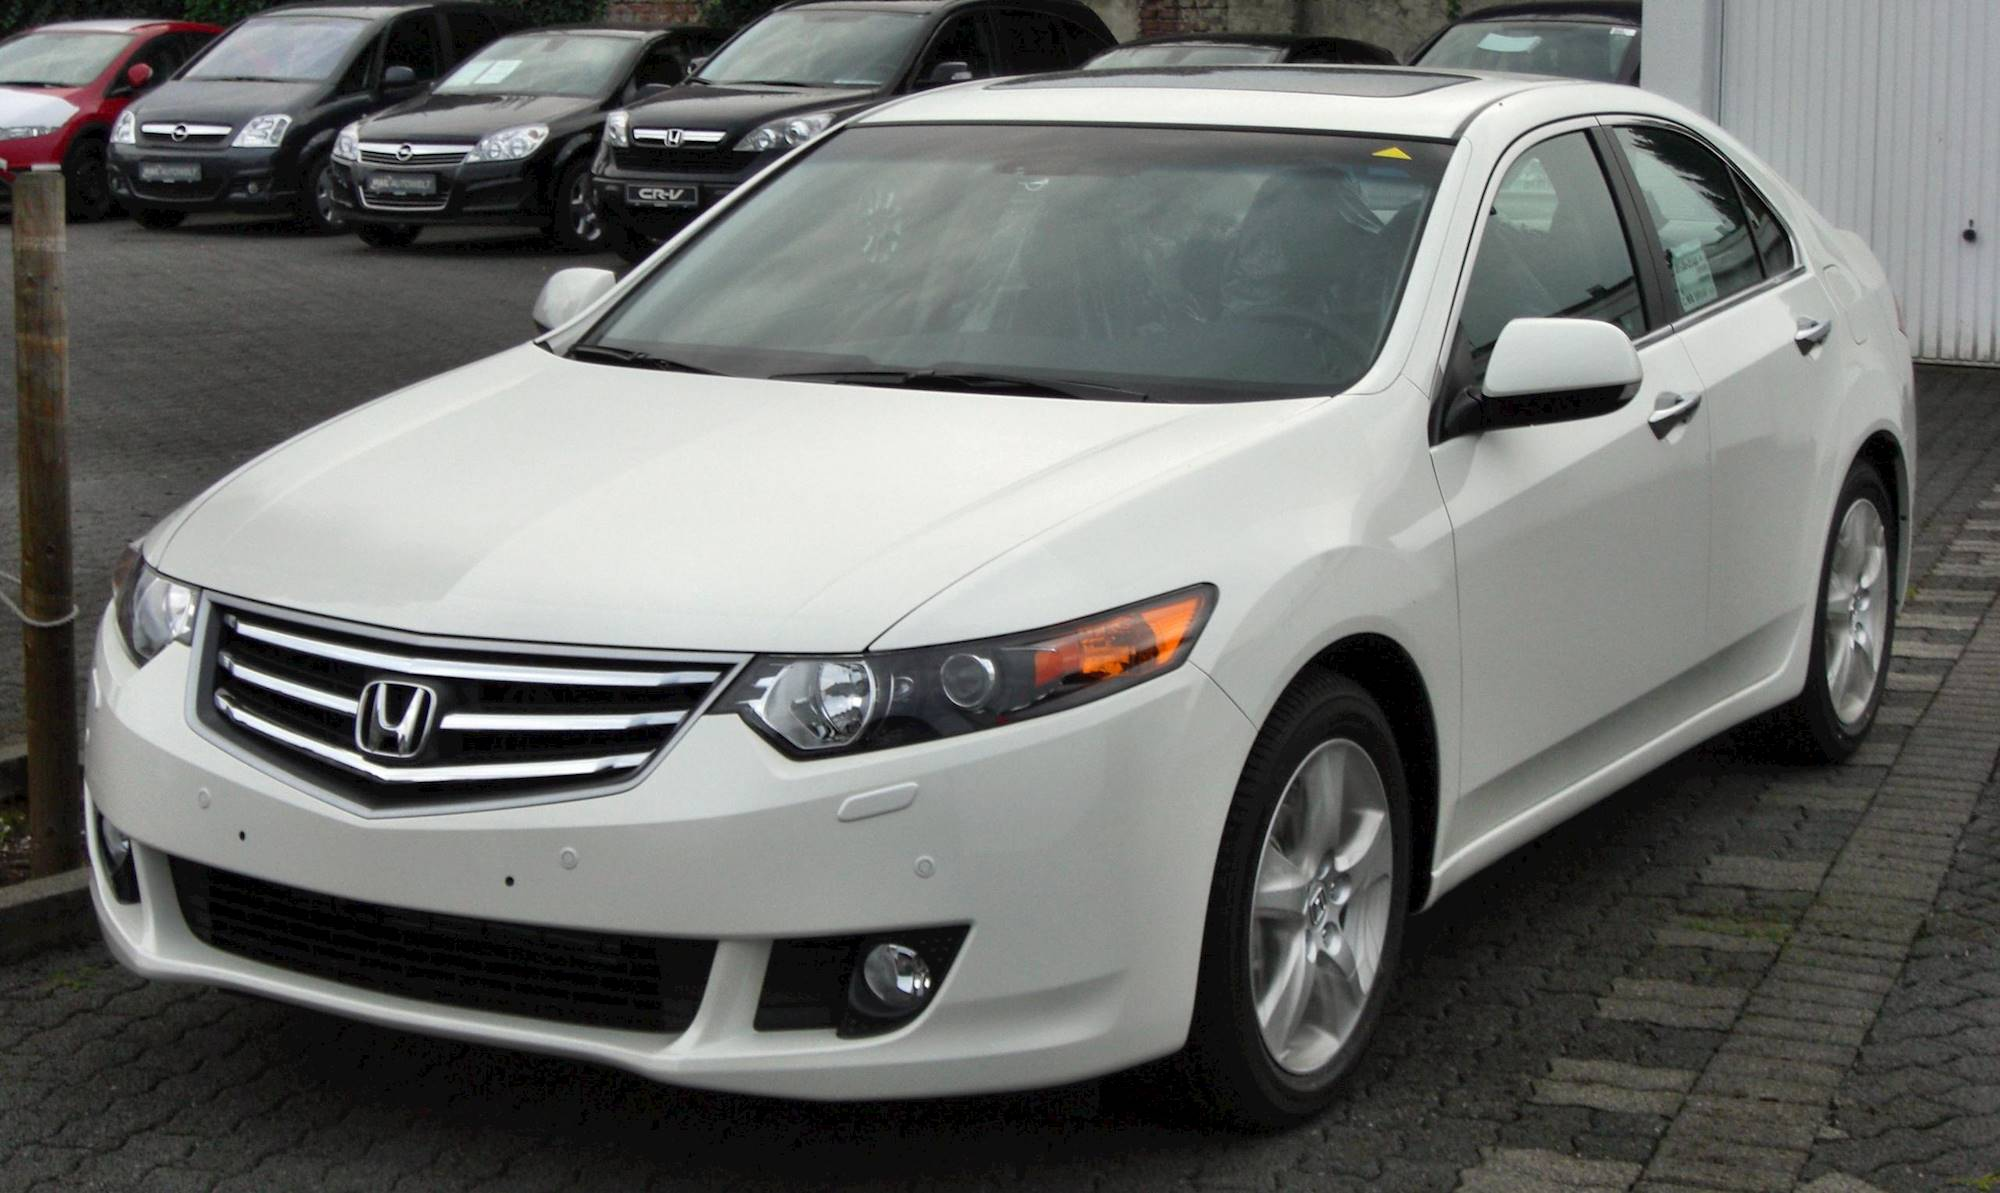 2016 Honda Accord Lx Sedan 2 4l Manual